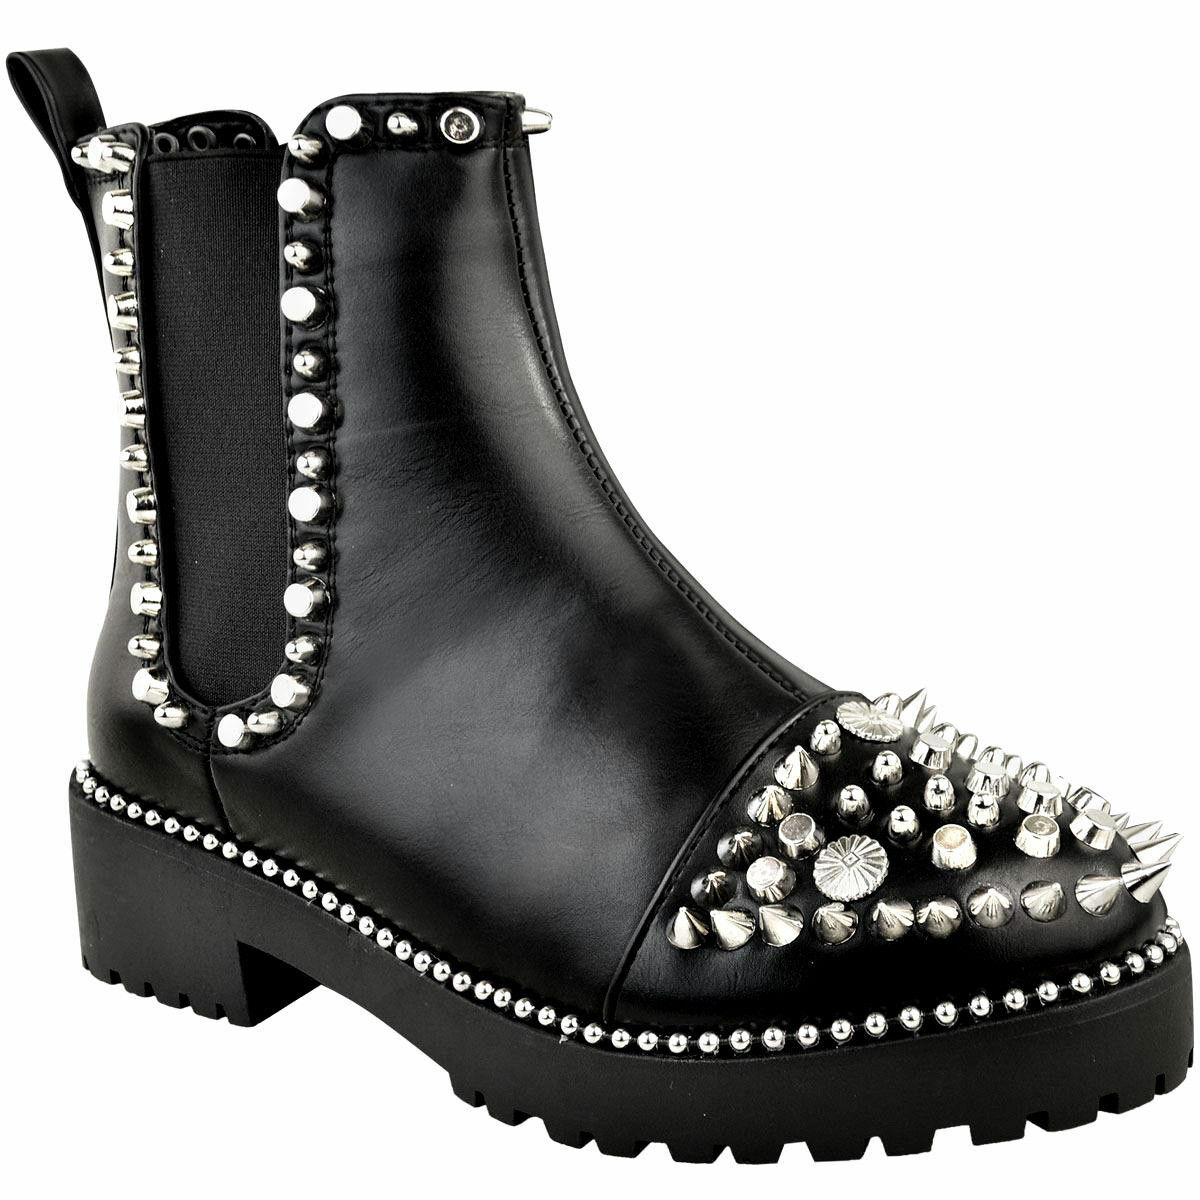 New Womens Chelsea Spike Spike Spike Chunky Punk Goth Biker Studded Stud Ankle Boots Pull On d60e73